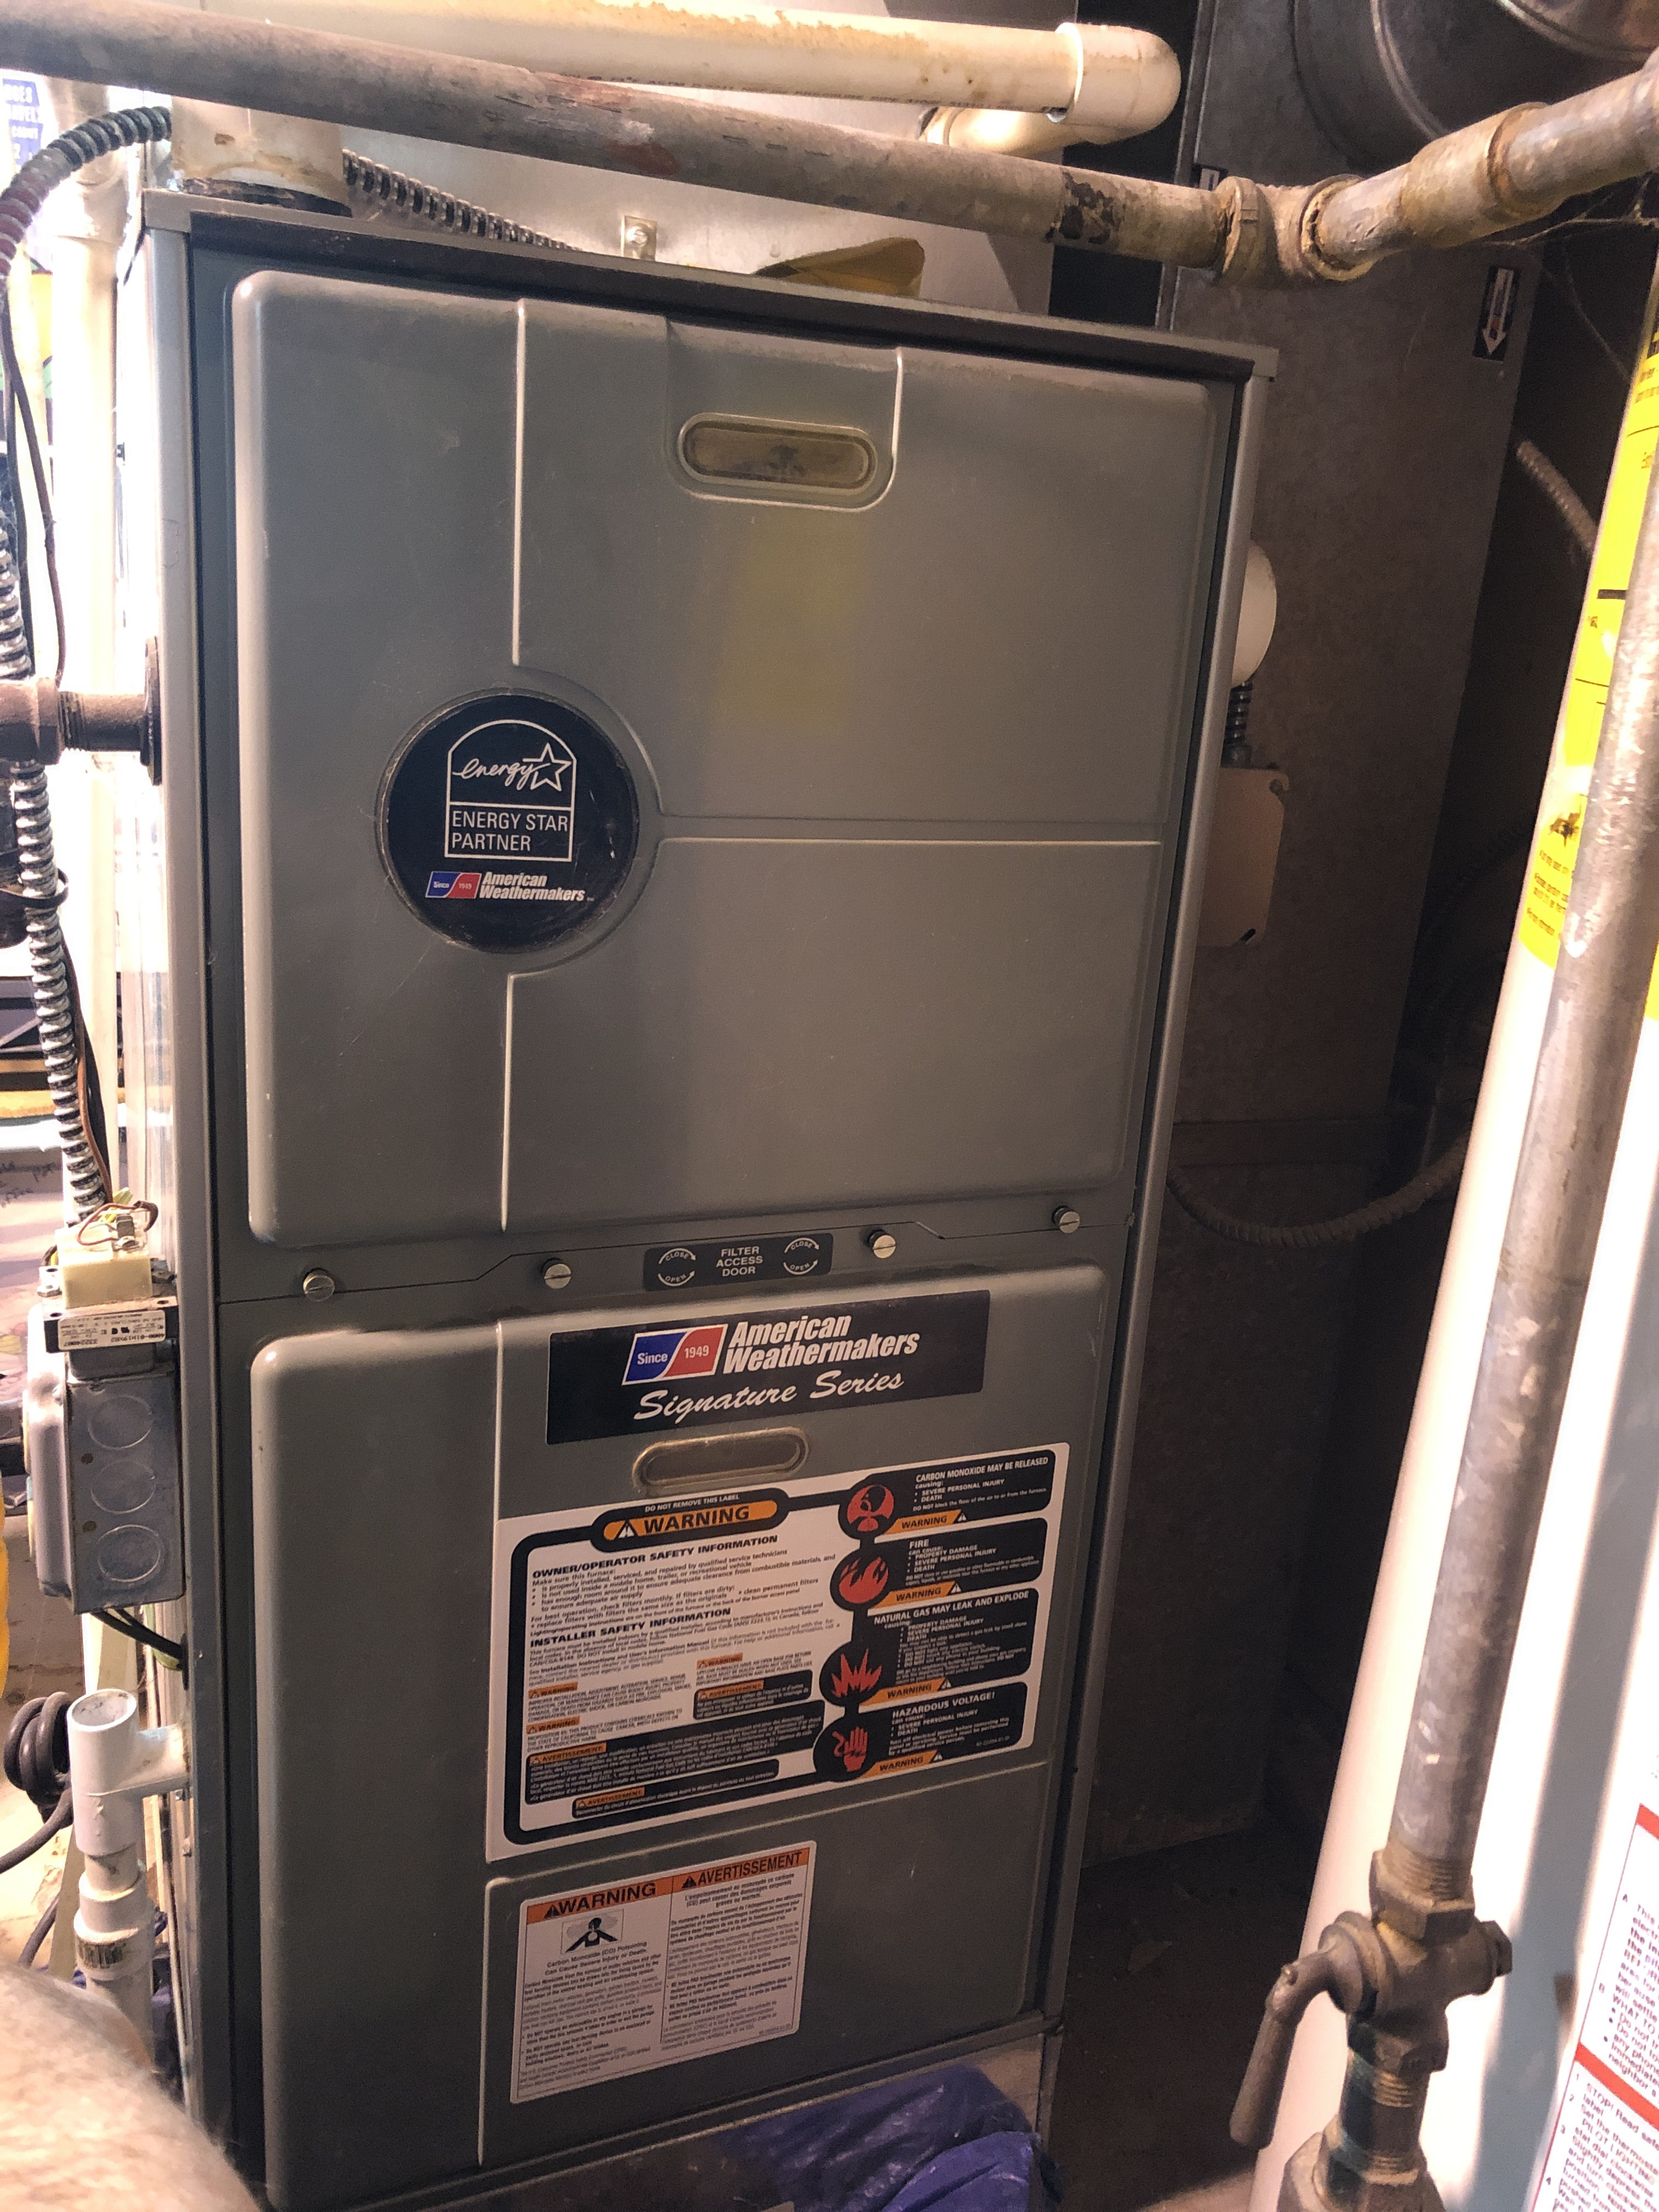 Provided club customer with annual preventative maintenance on furnace and took measures to ensure the life expectancy of the equipment